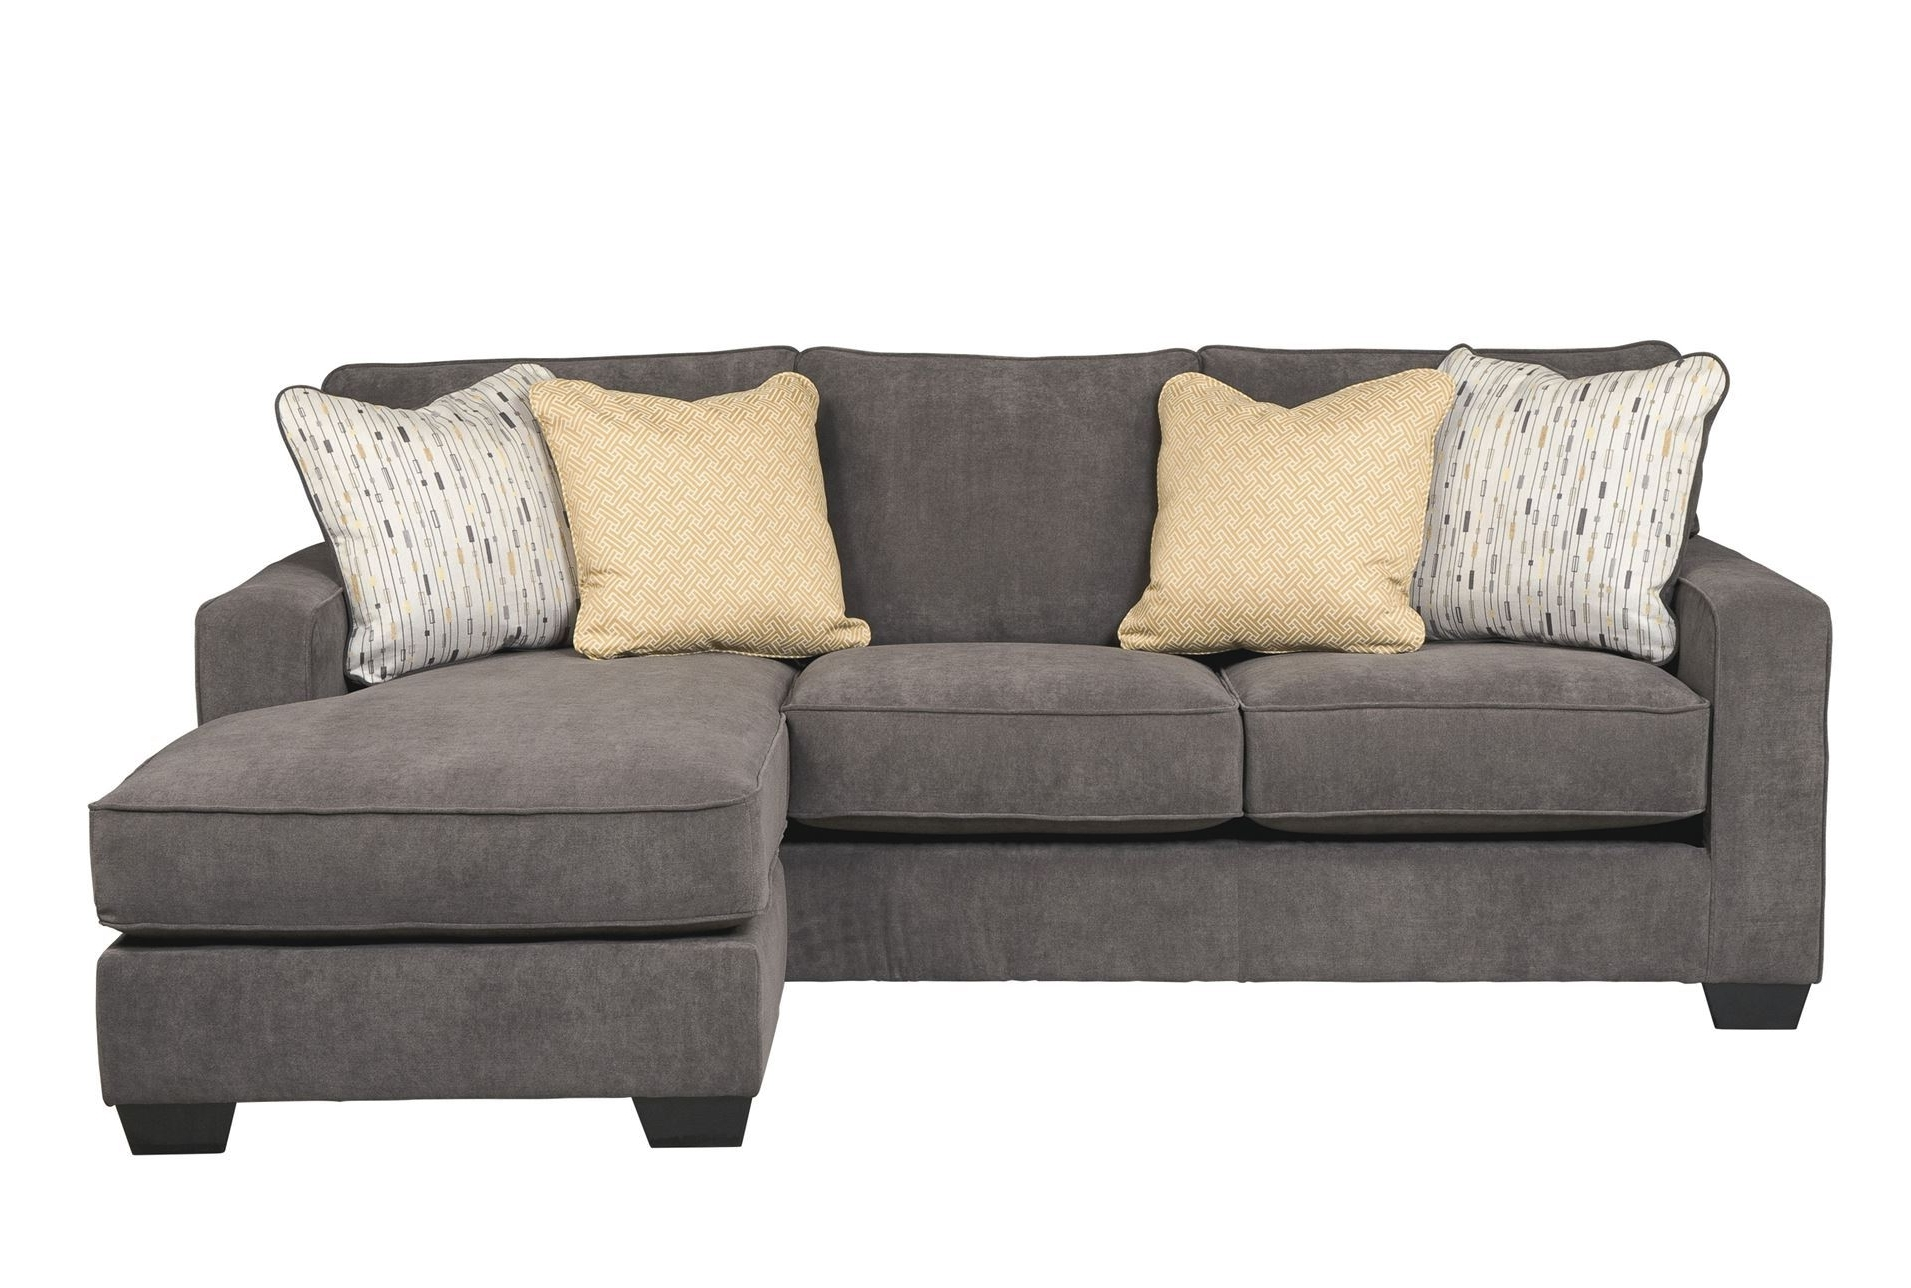 The Ideal Solution For Small Spaces – Sectional With Sleeper Sofa For Recent Grey Sofa Chaises (View 4 of 15)